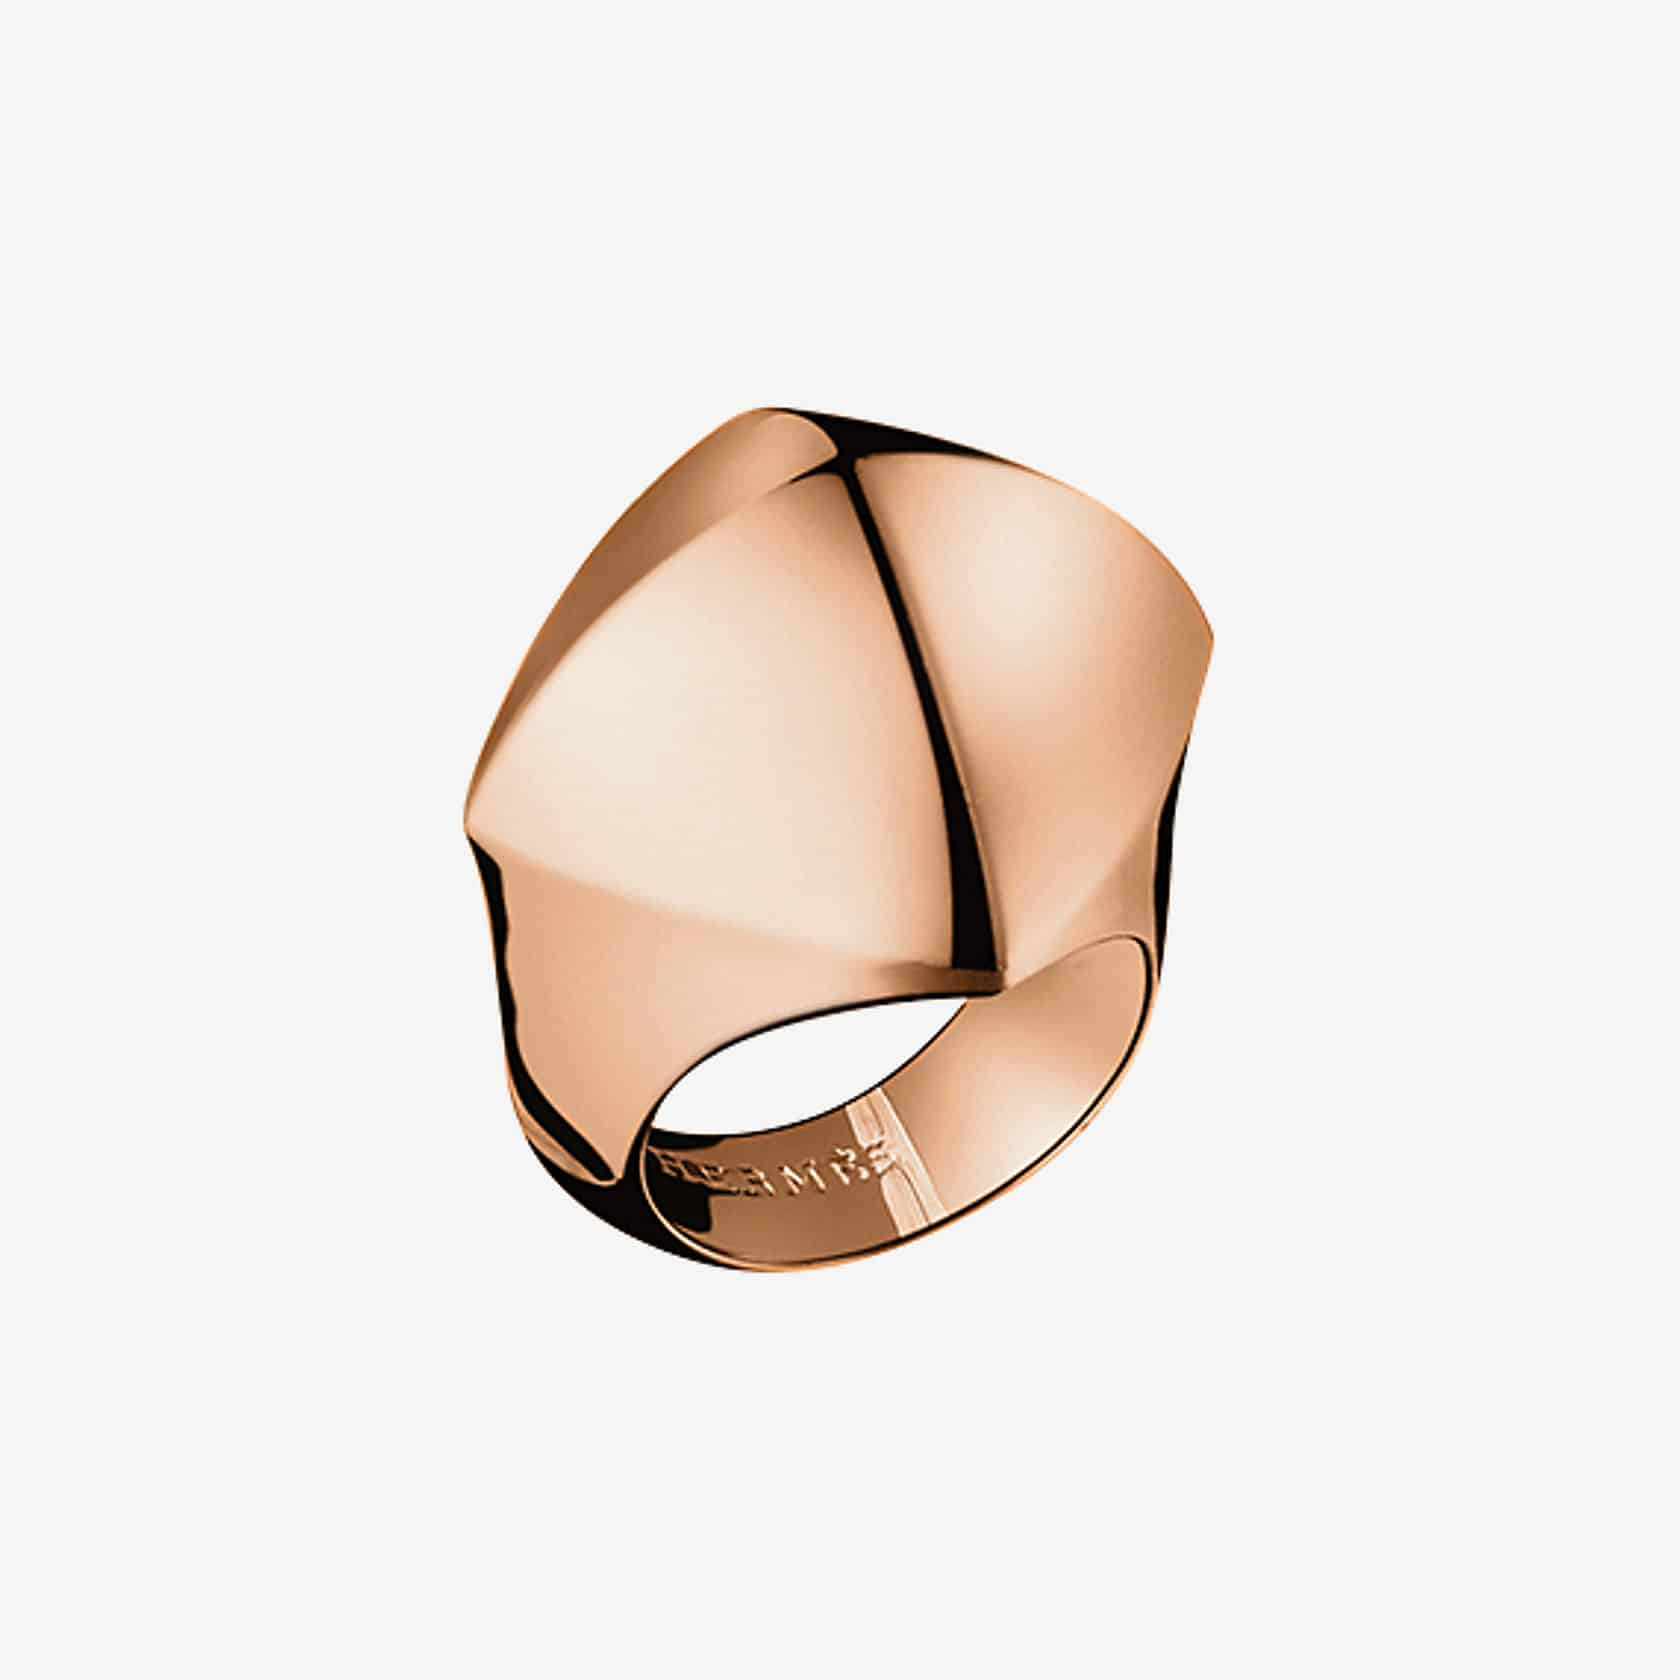 خاتم Collier De Chien Rock Rose Gold من علامة هيرمس Hermes